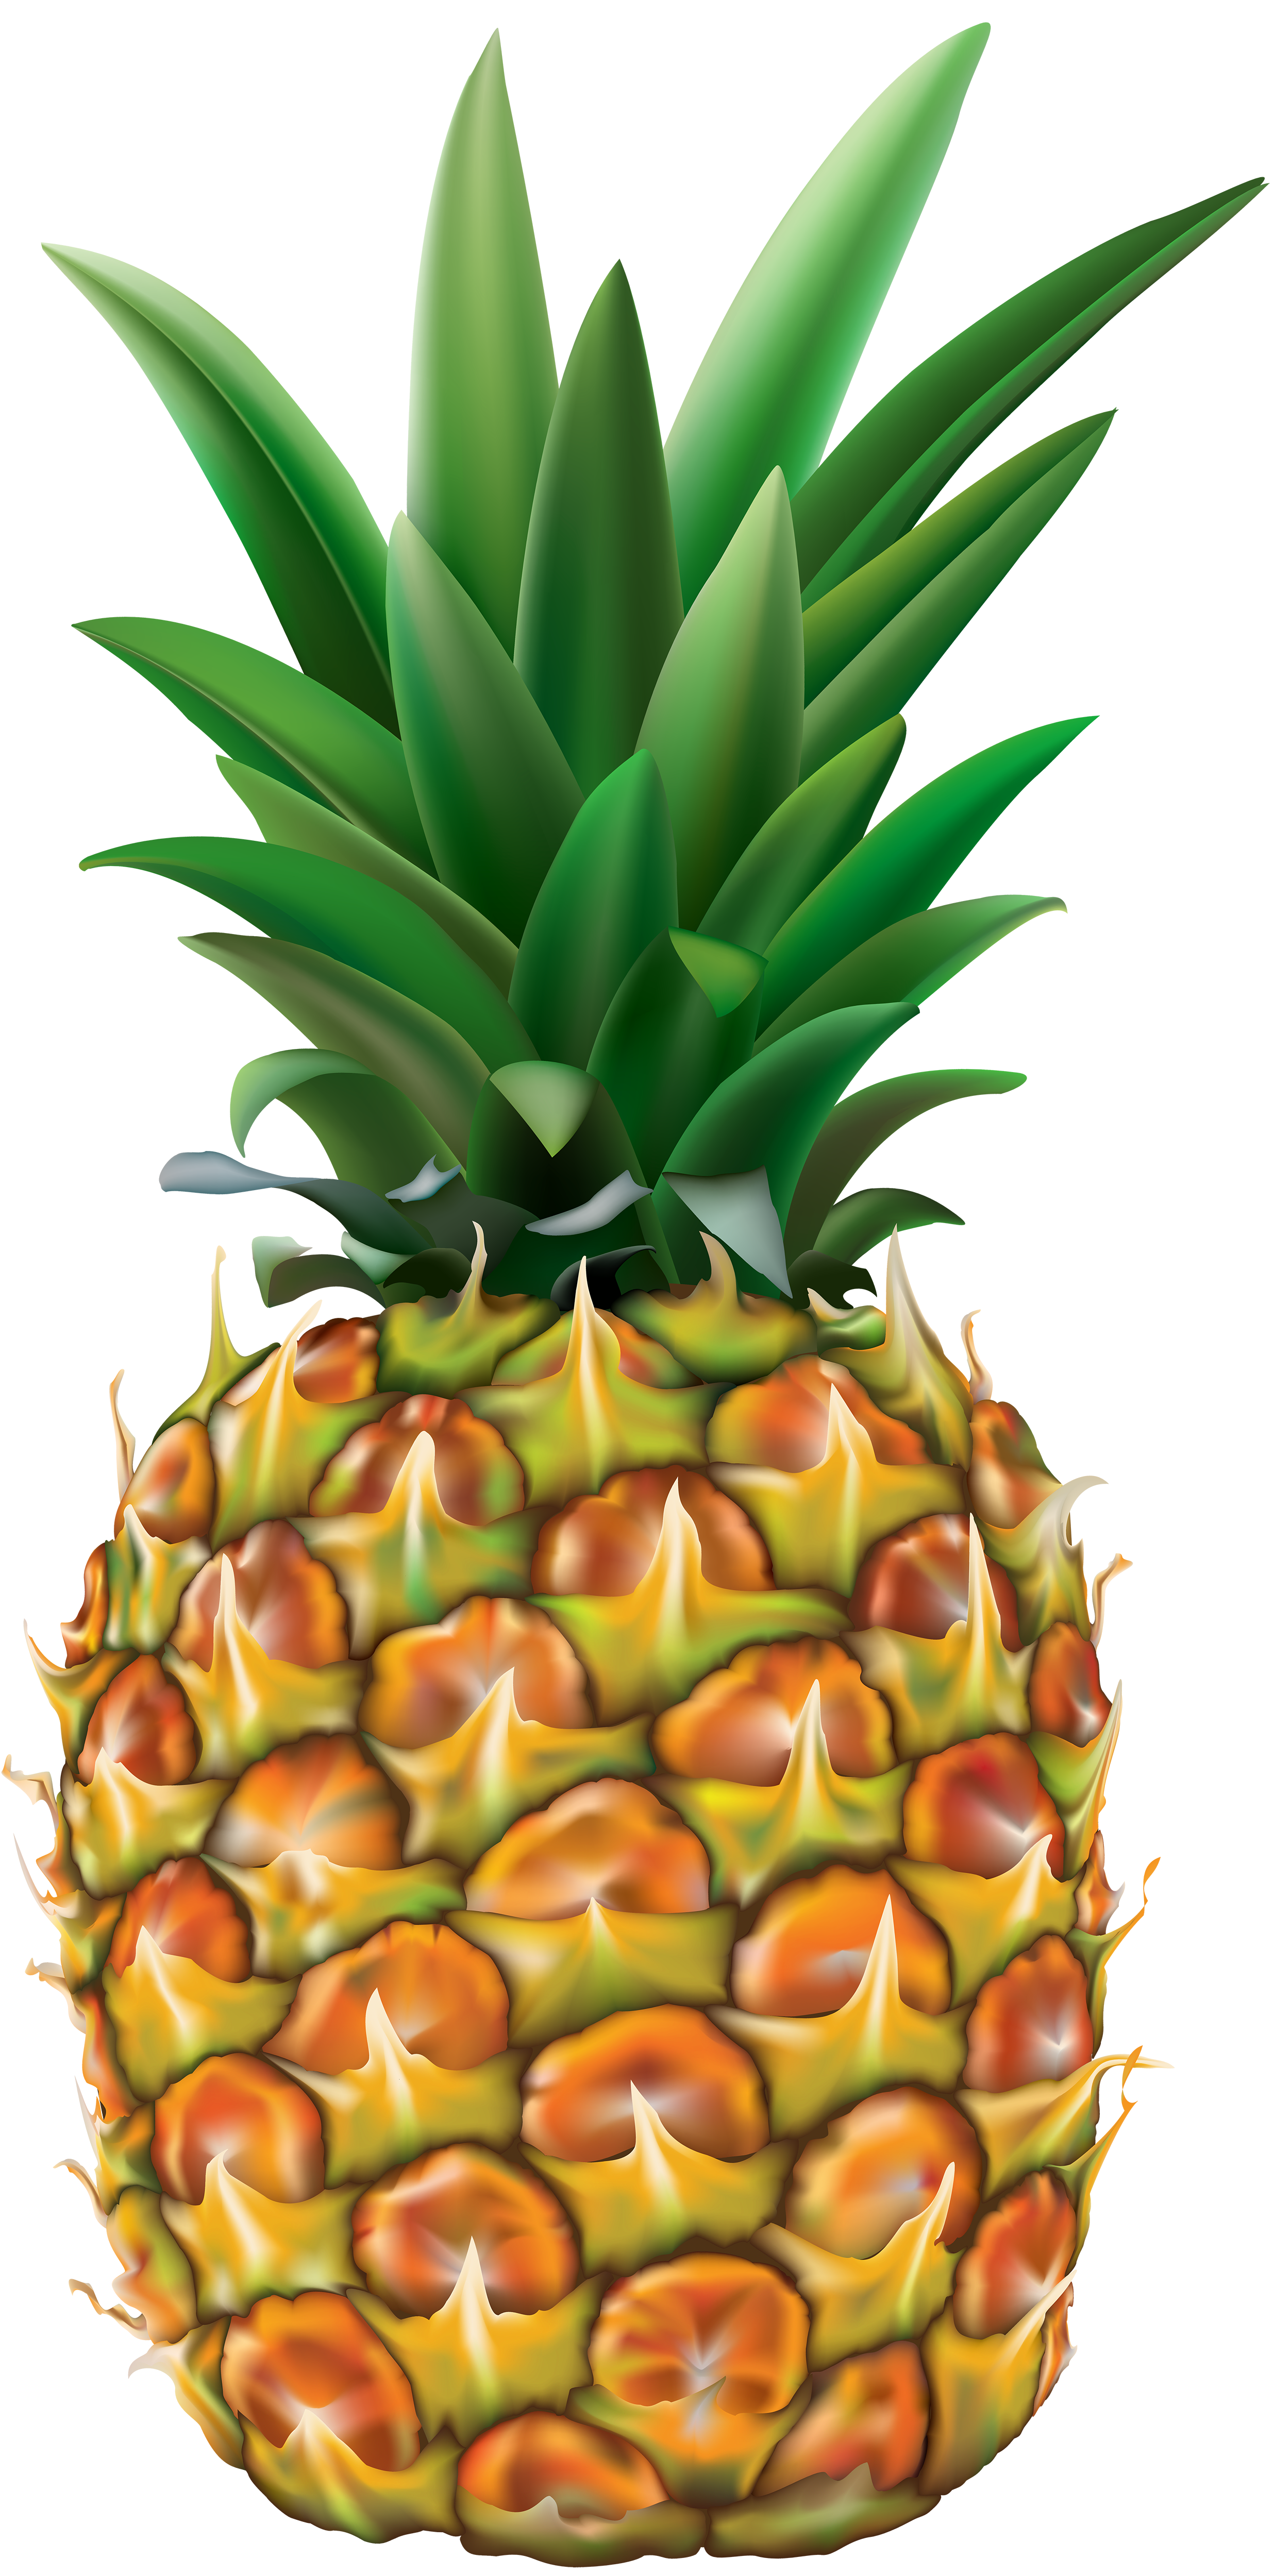 pineapple clipart transparent background pencil and #18456